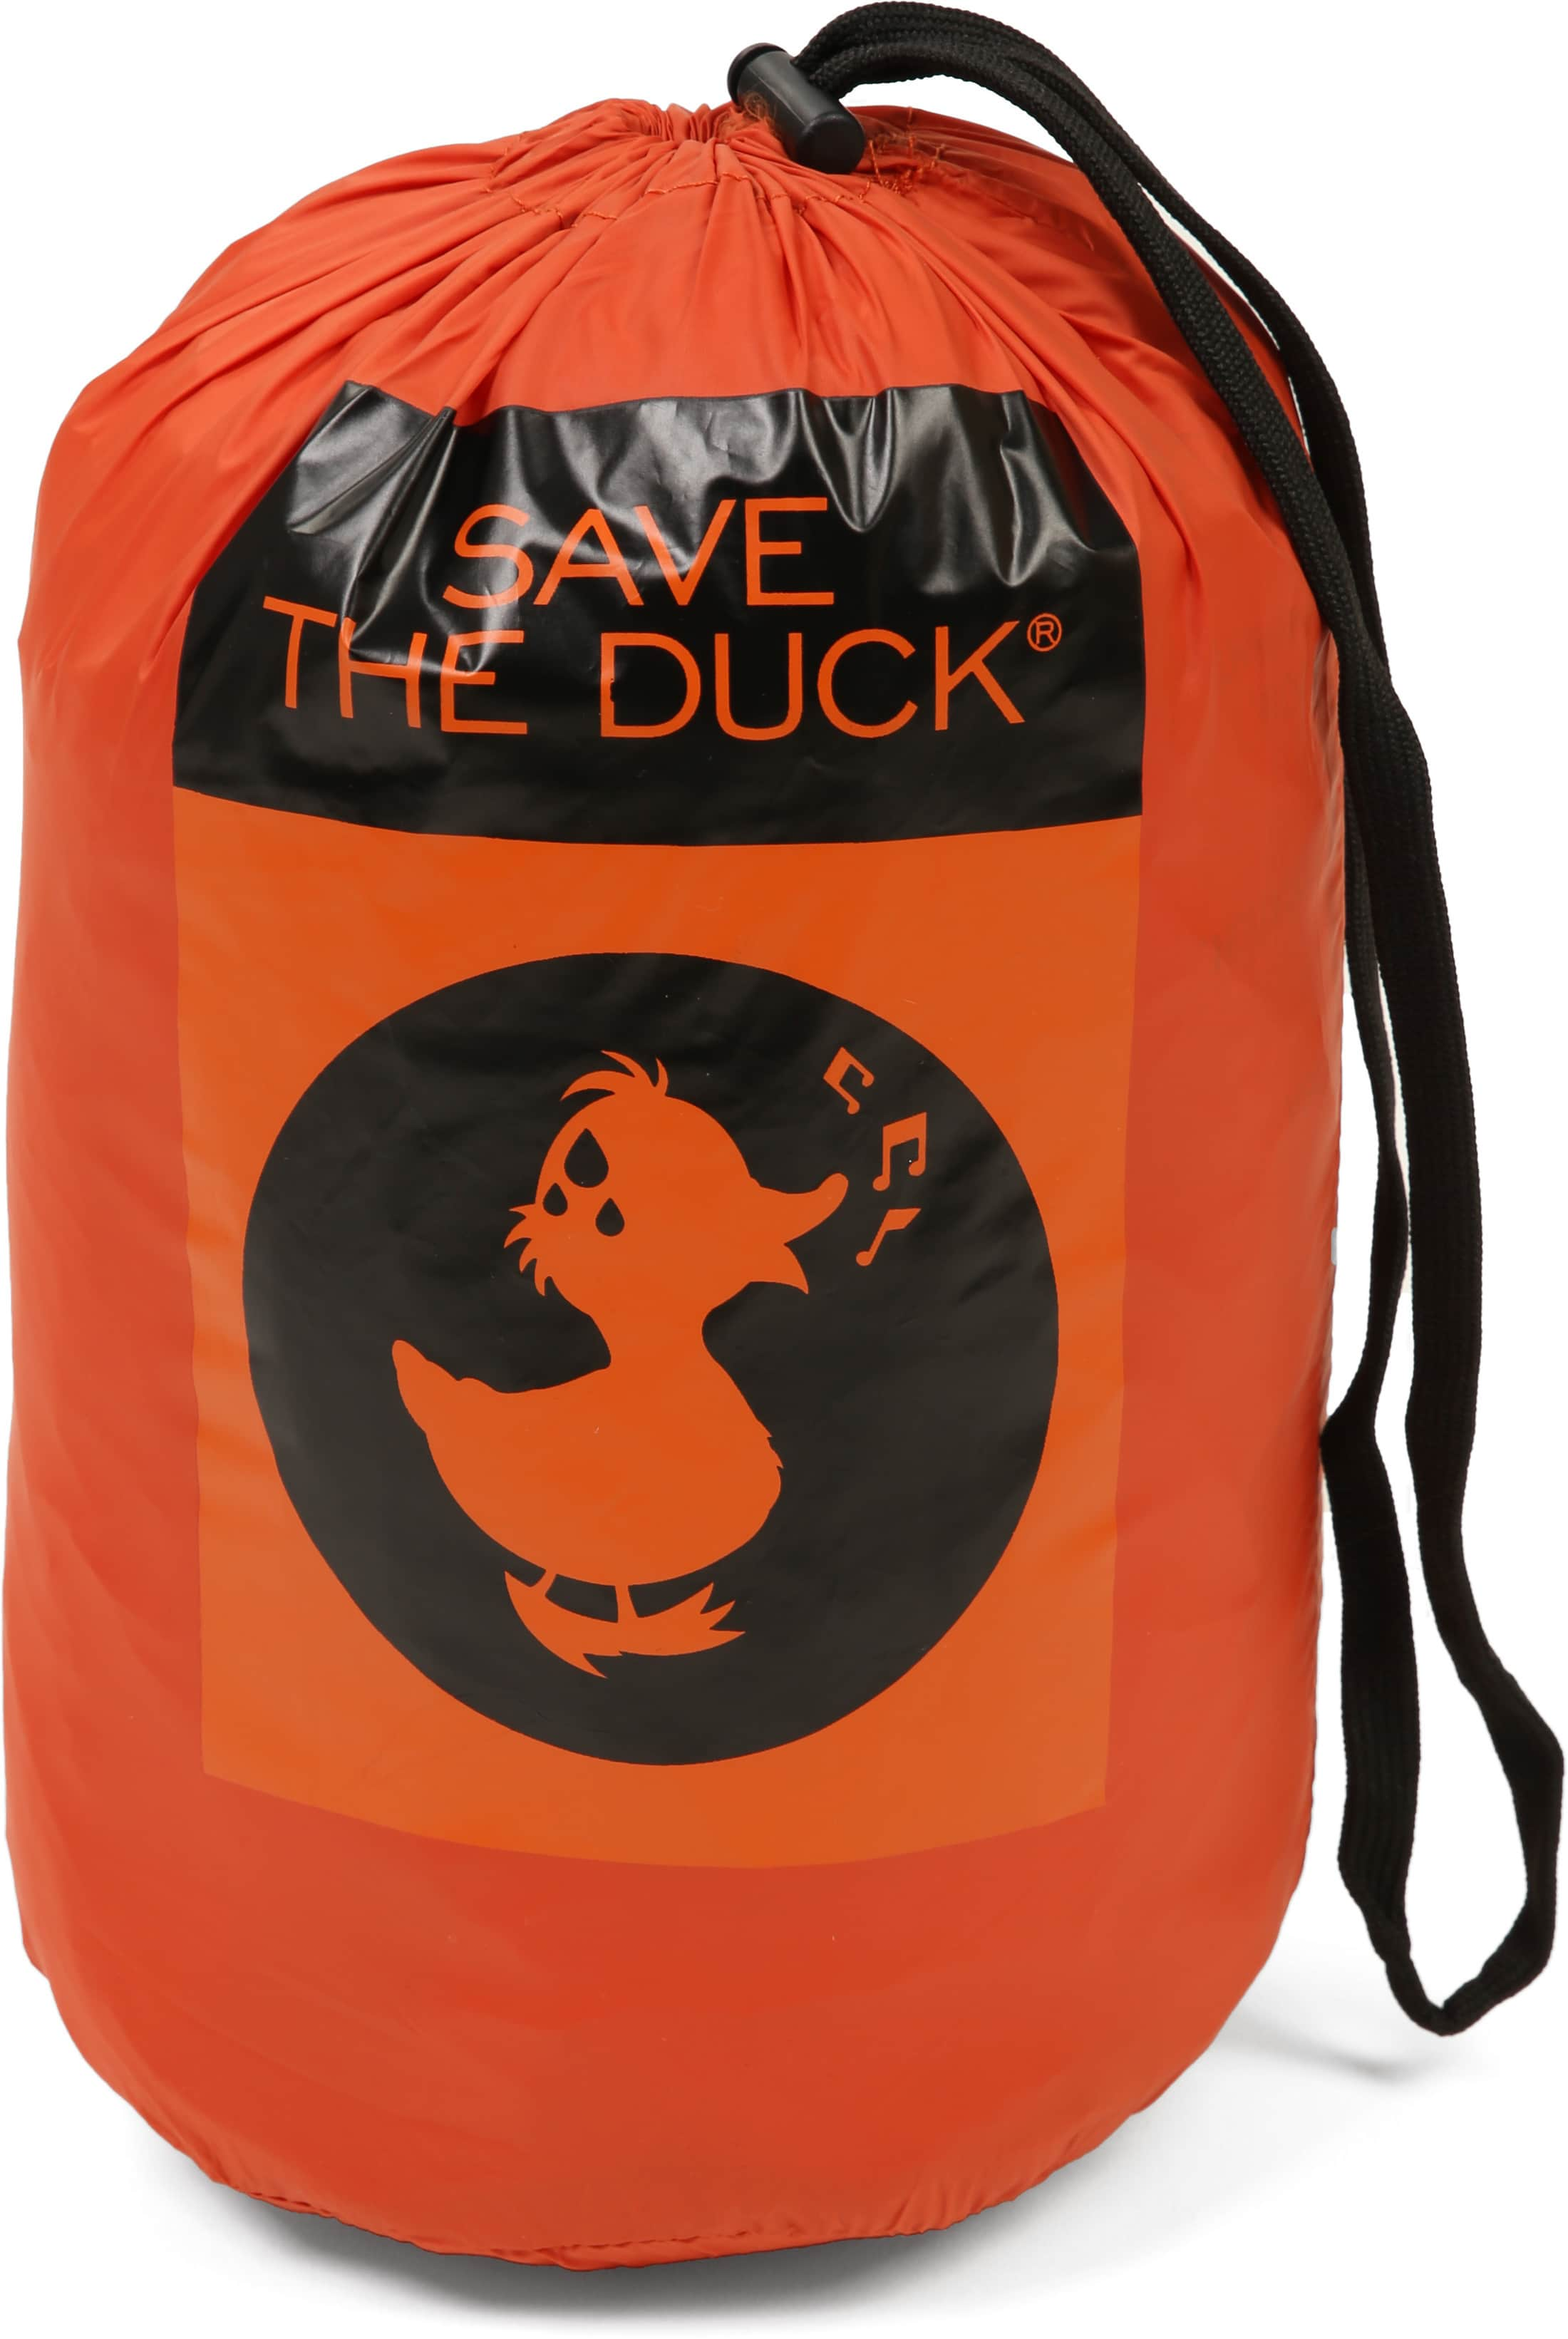 Save the Duck Jas Giga Oranje foto 5